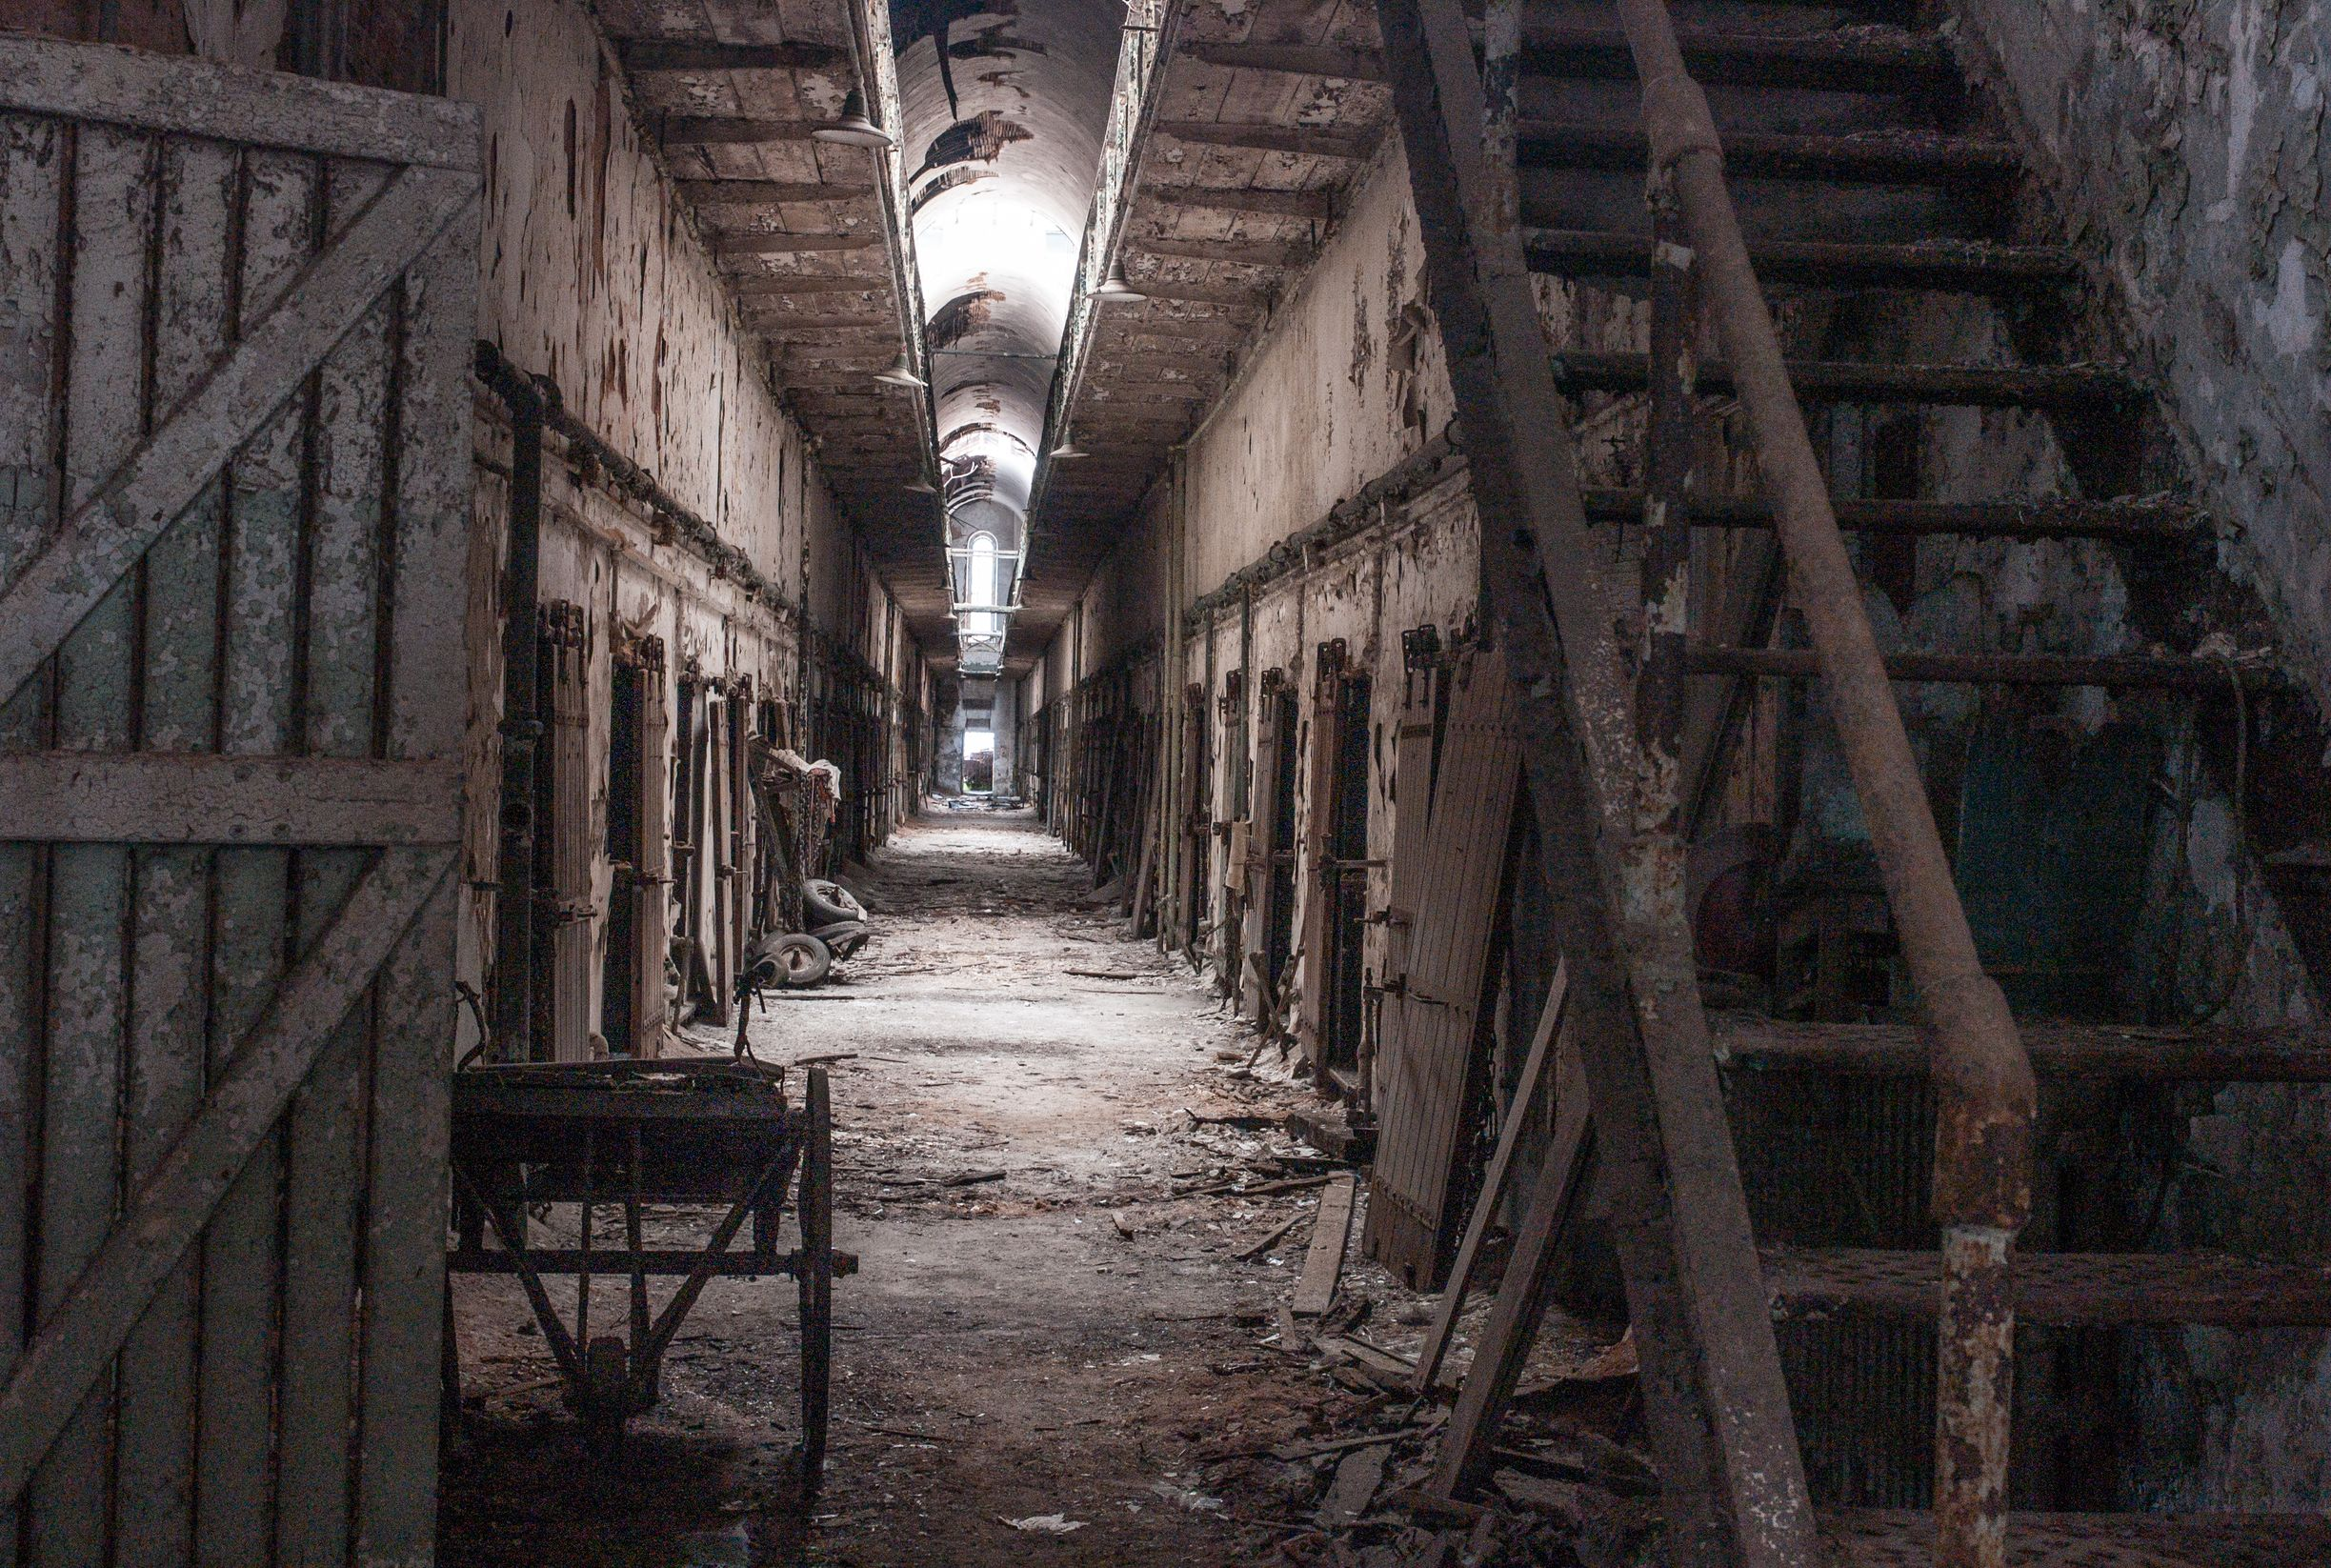 The crumbling interior of the Eastern State Penitentiary in Philadelphia, showing some metal steps going up and a row of doors lining a long and creepy corridor.